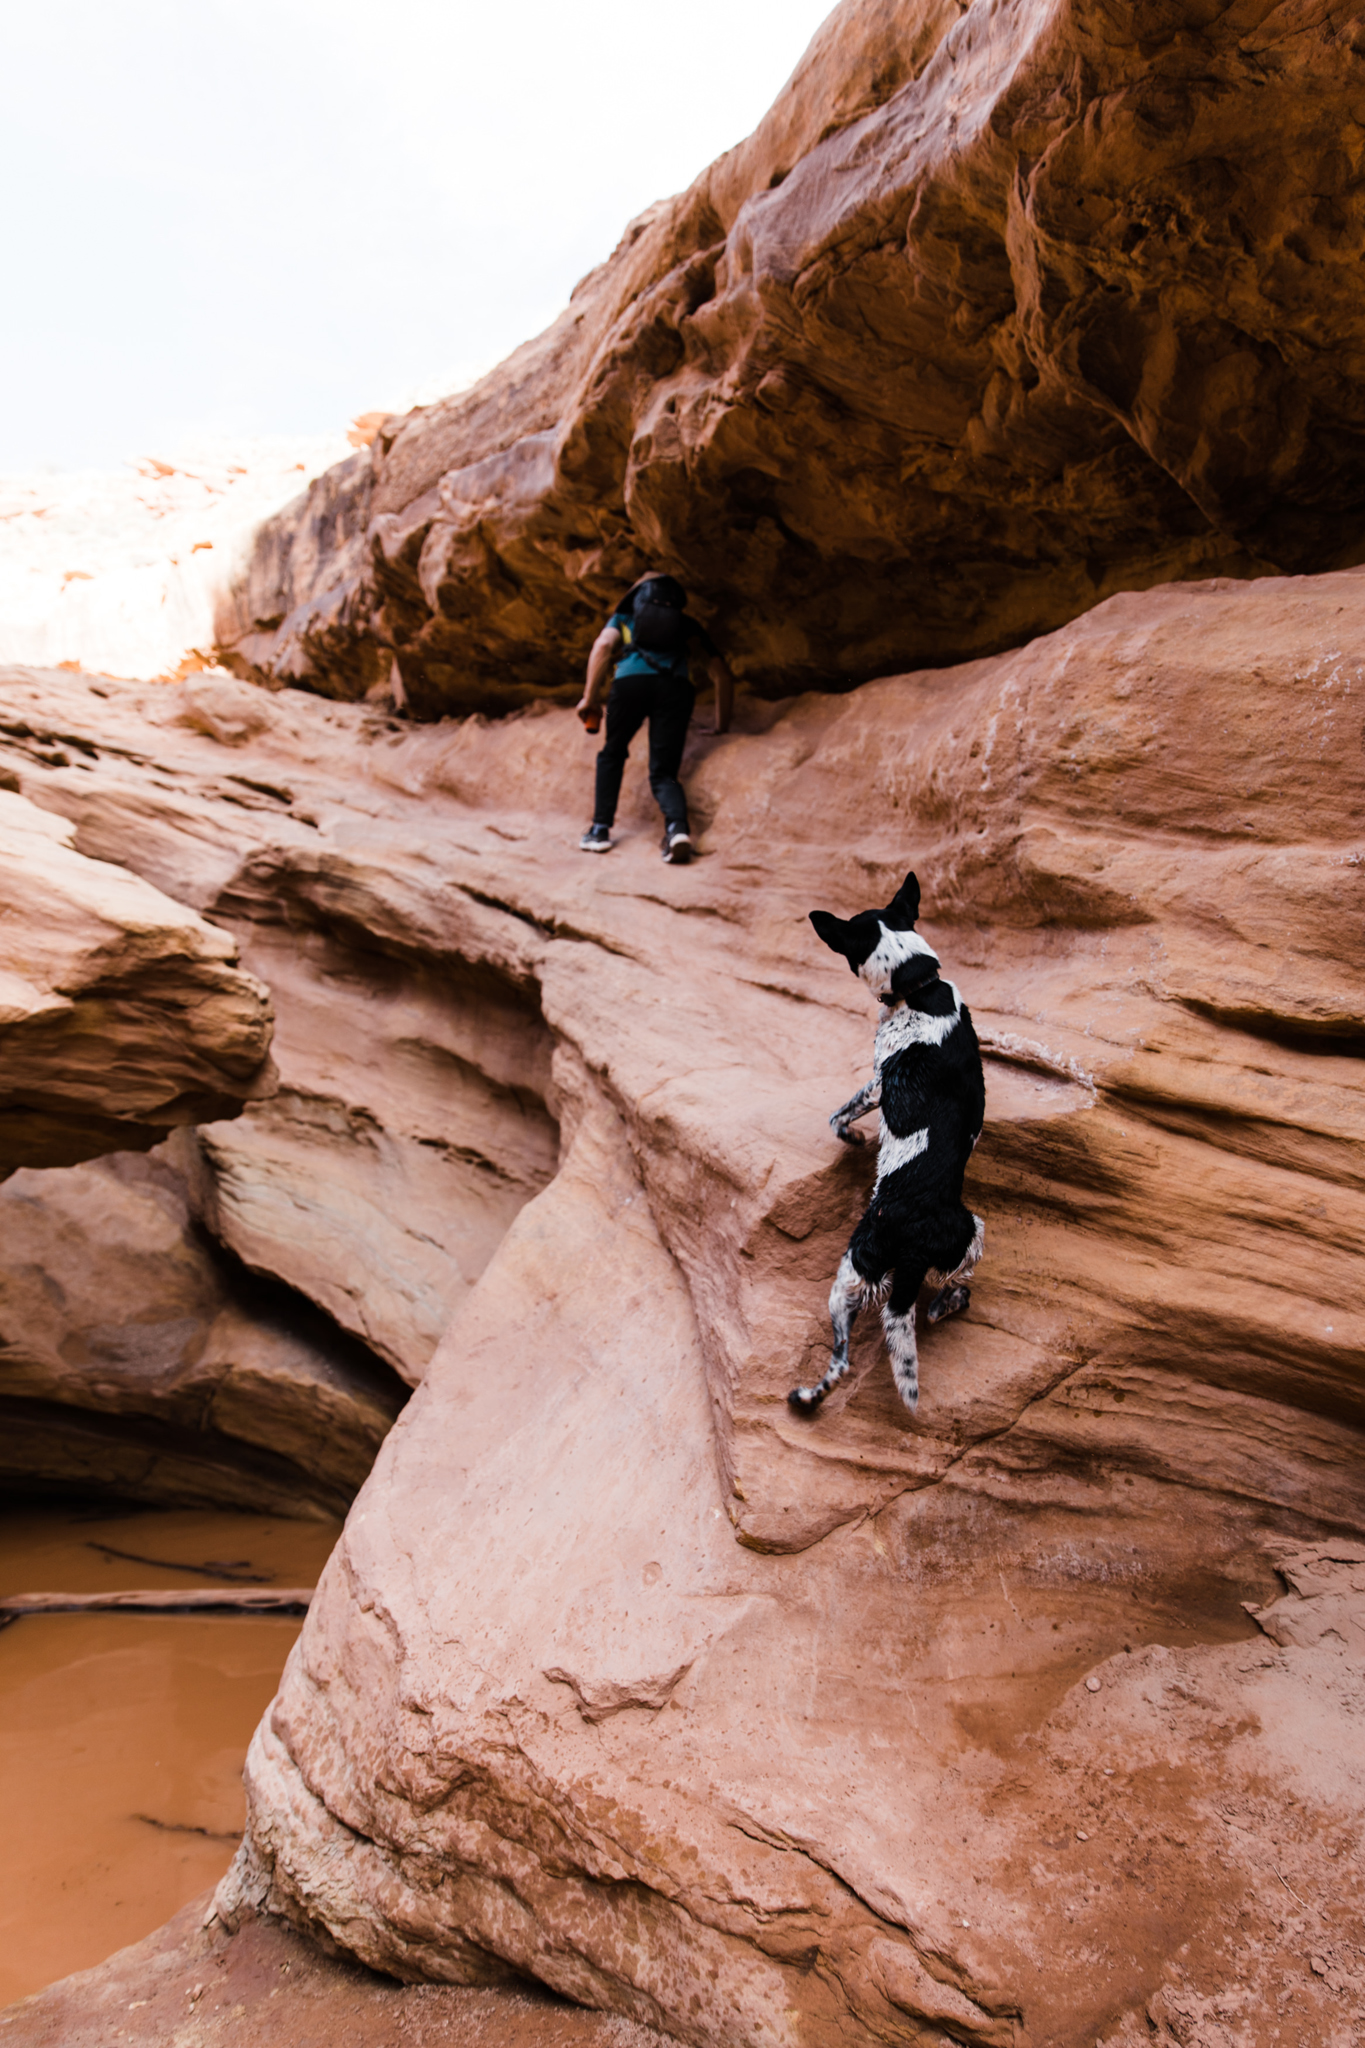 exploring canyons in utah | utah and california adventure elopement photographers | the hearnes adventure photography | www.thehearnes.com